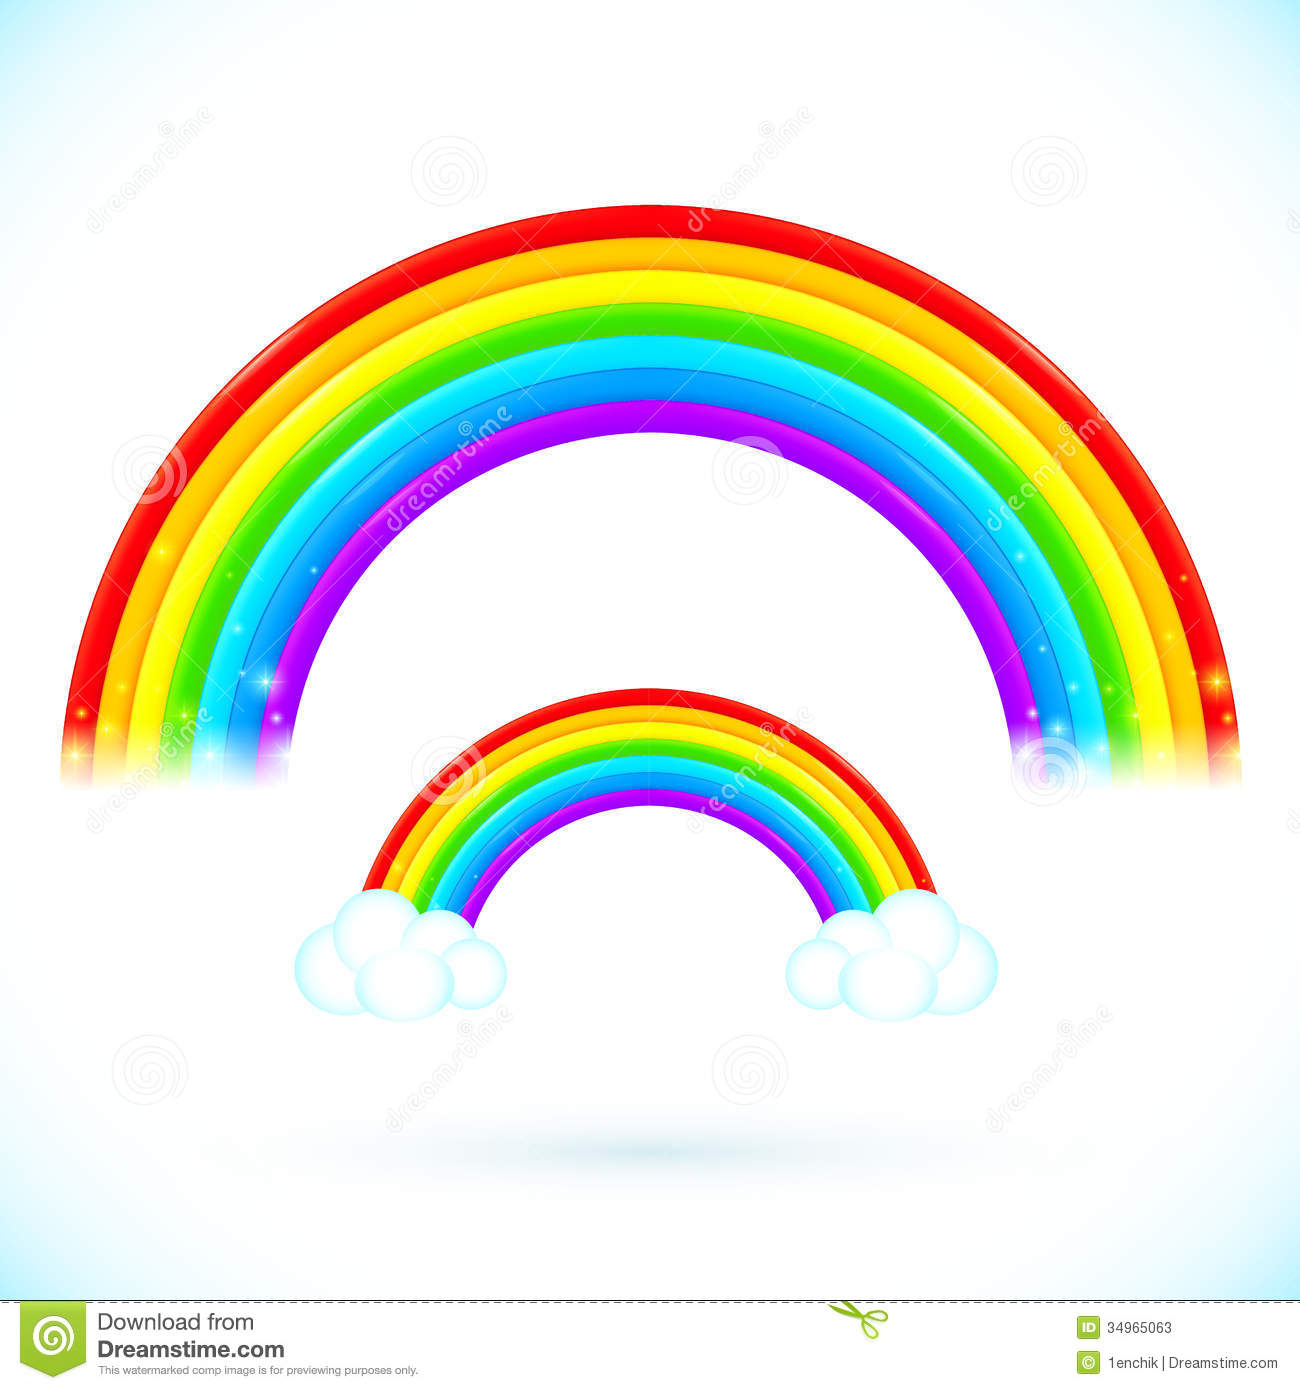 Rainbow With Clouds Black And White Clipart.